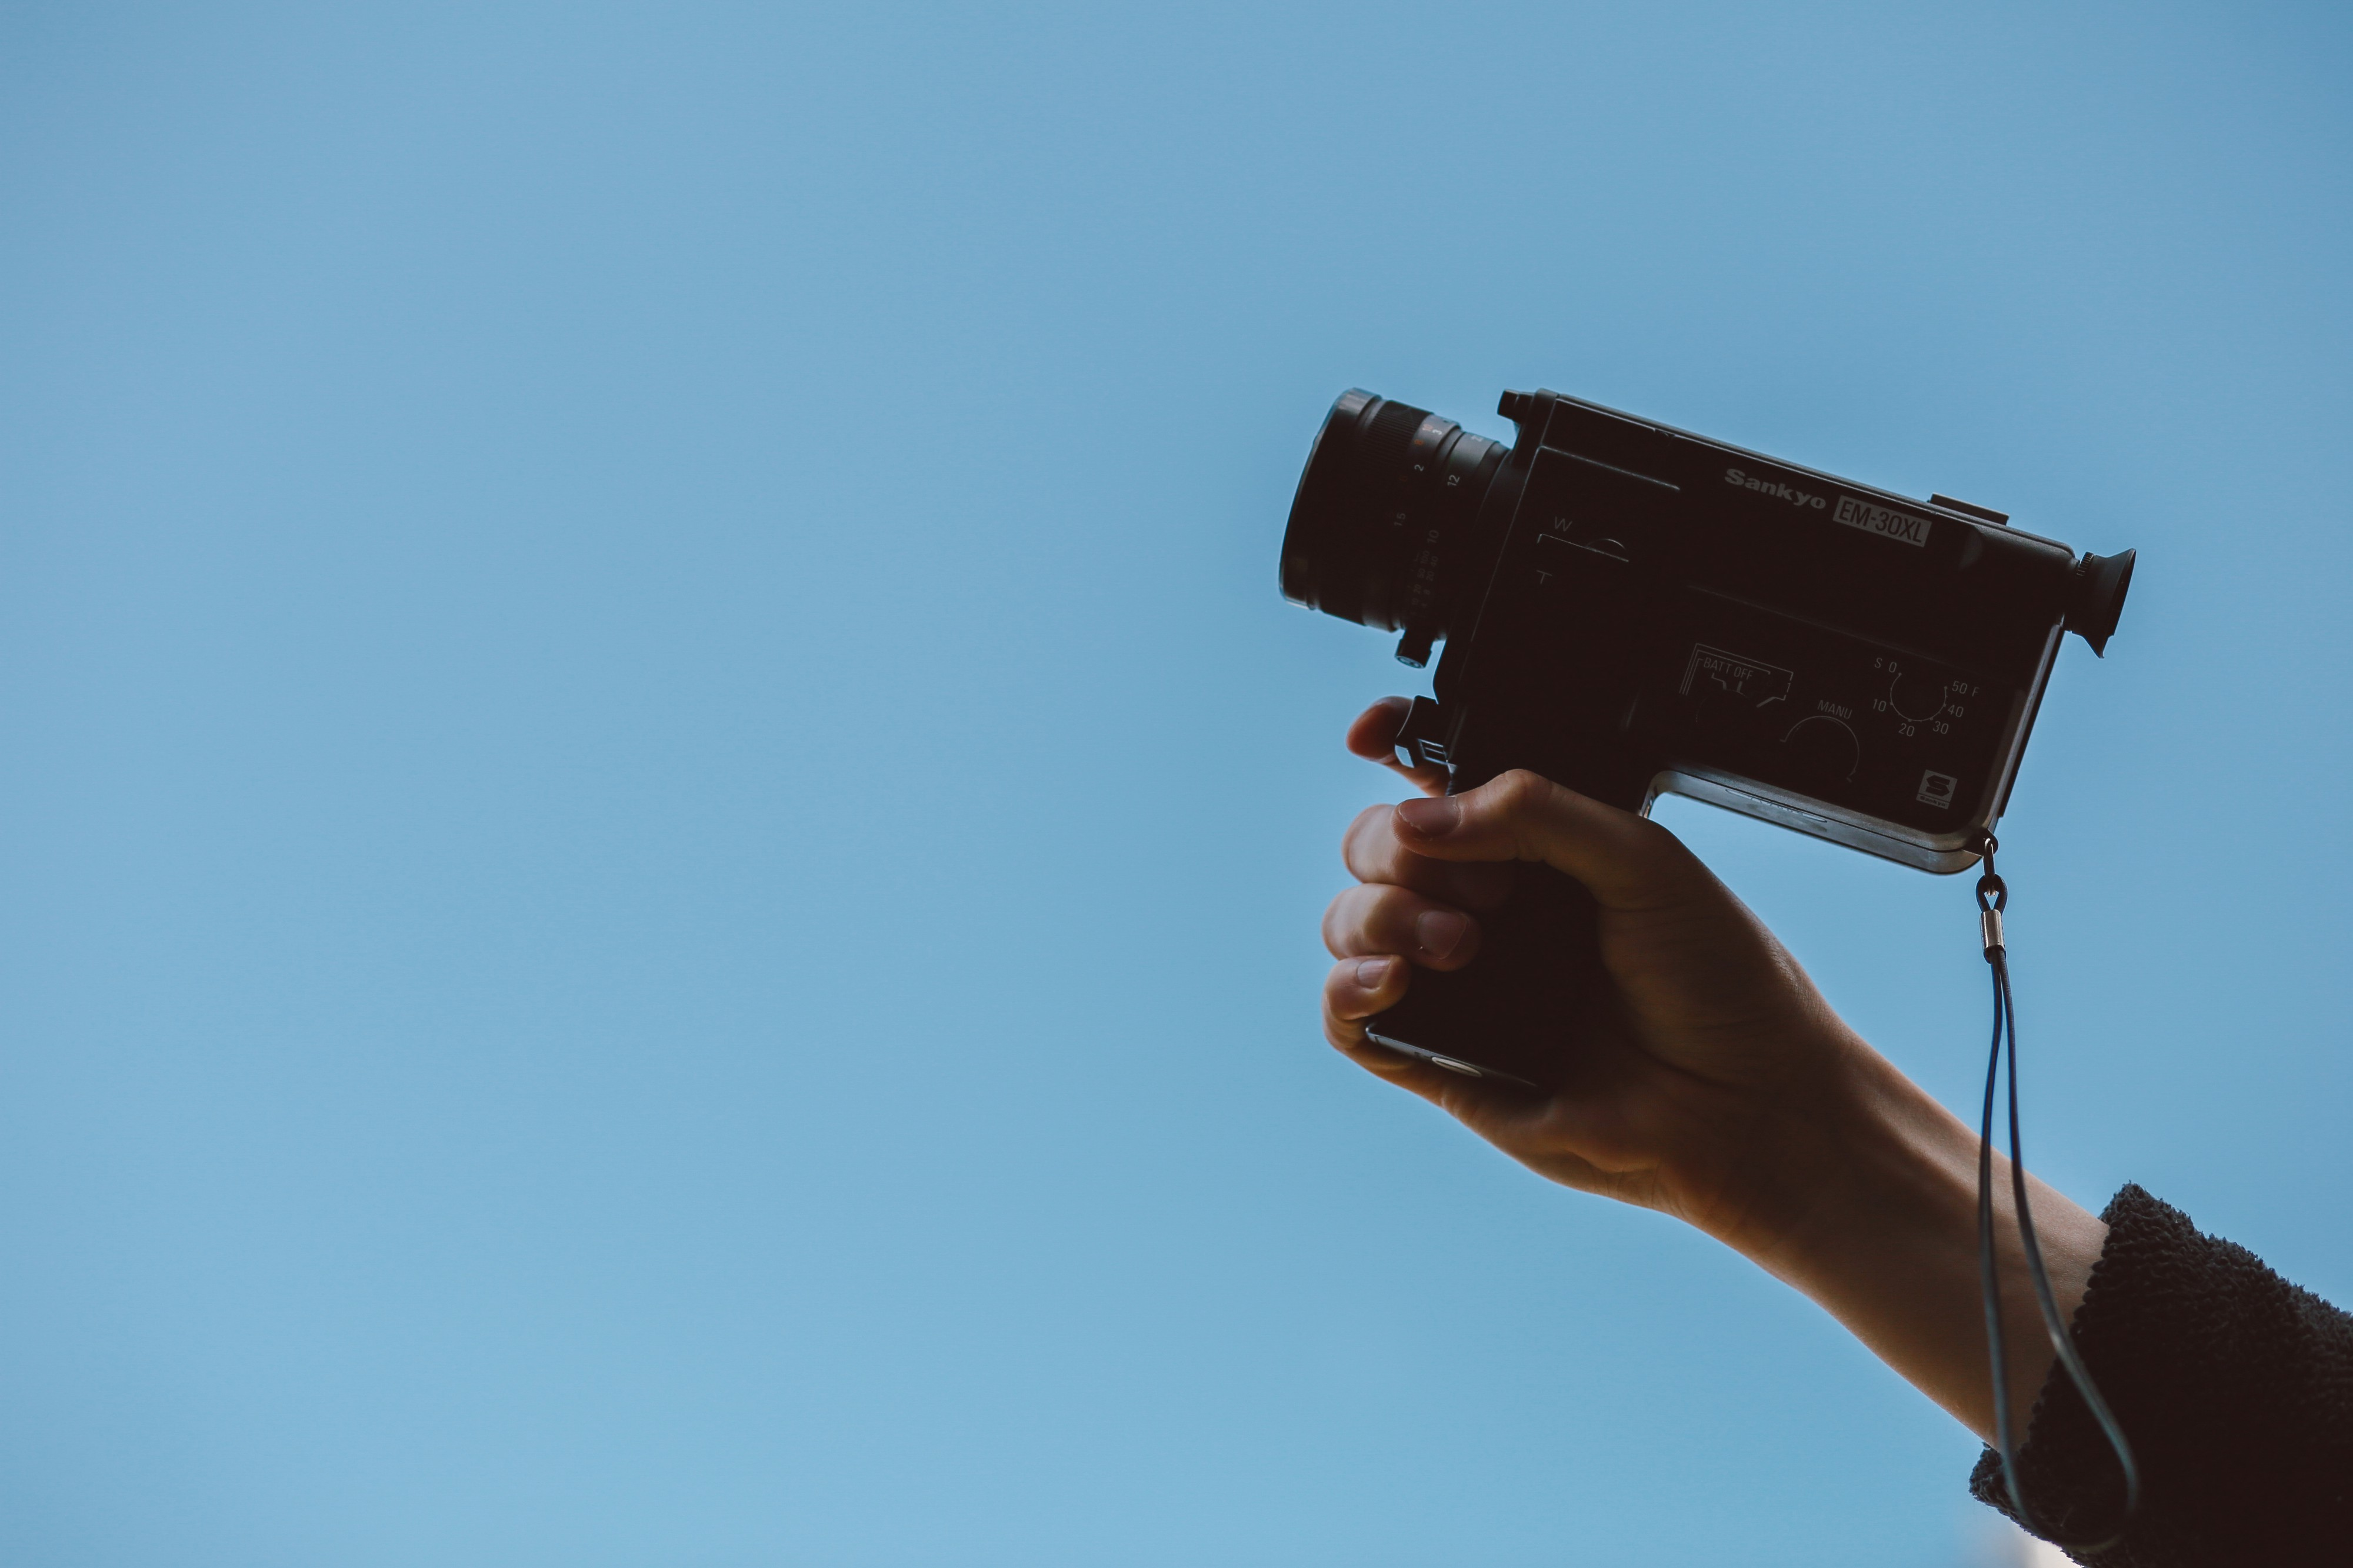 A hand holds a camera up to the sky.